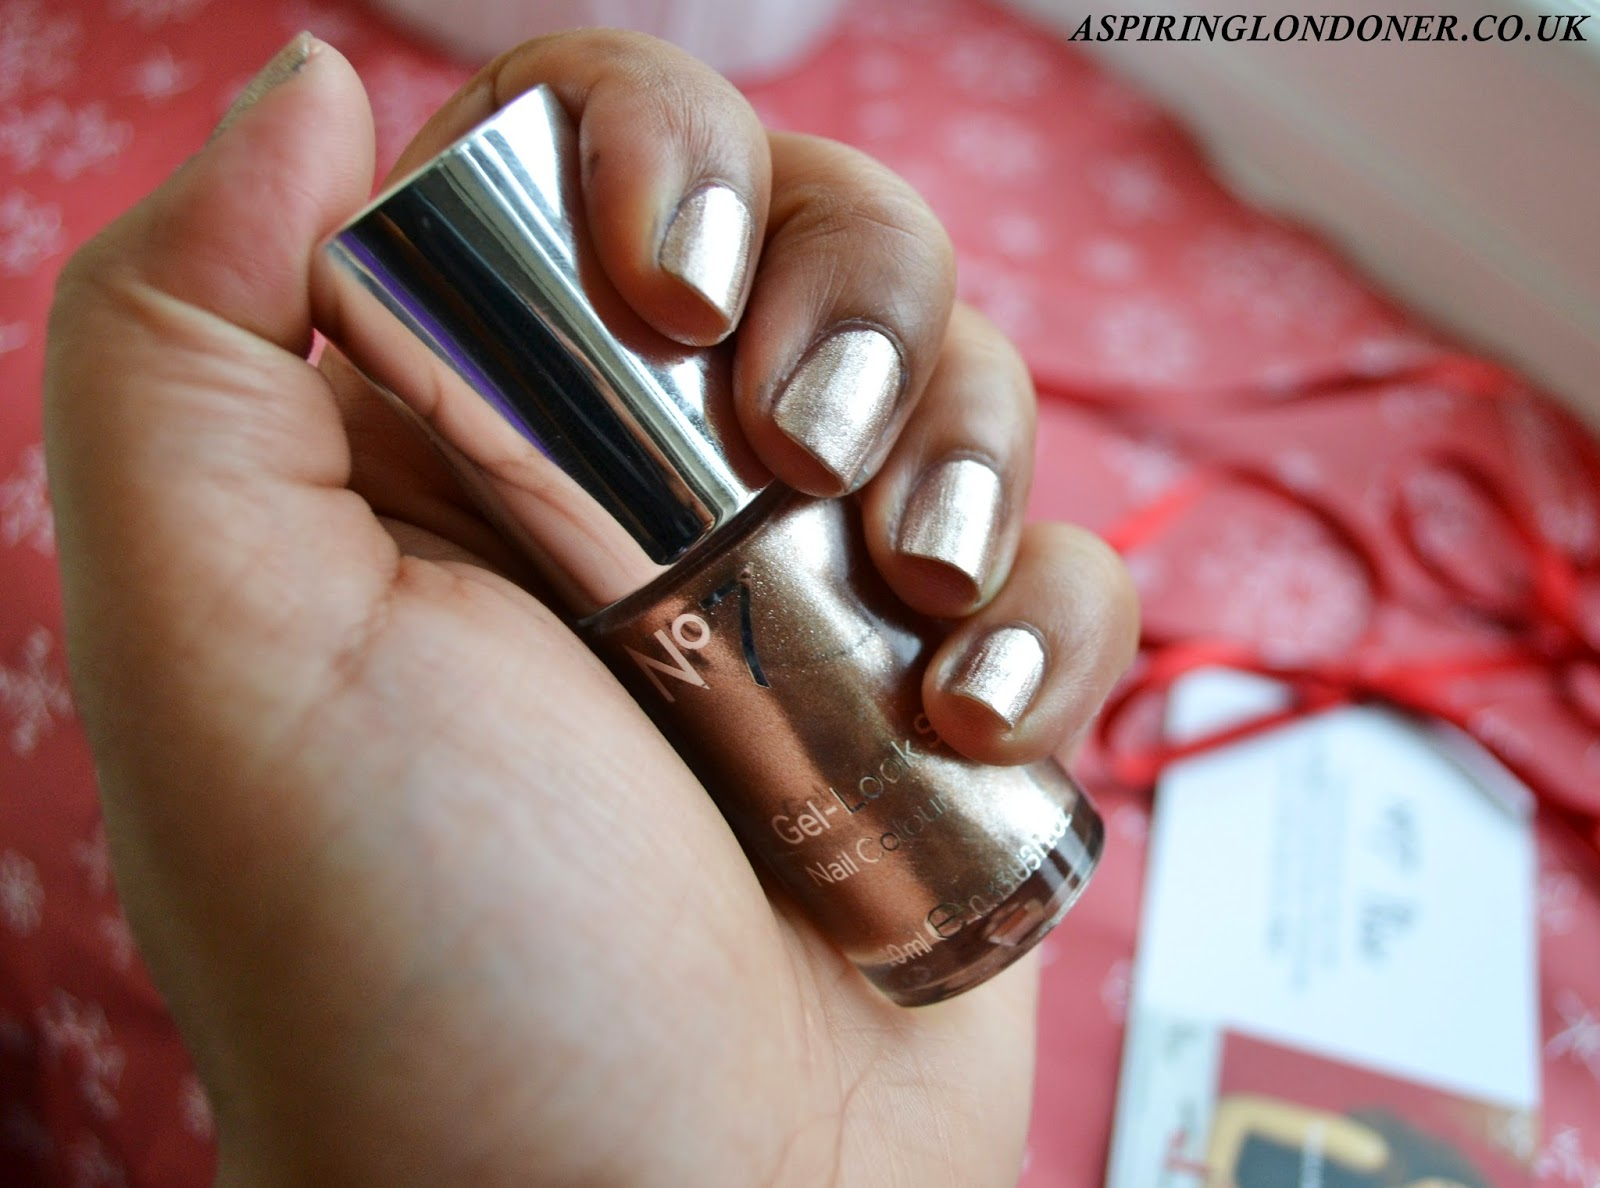 No7 Gel Look Shine Nail Polish Golden Sands Swatch Review - Aspiring Londoner